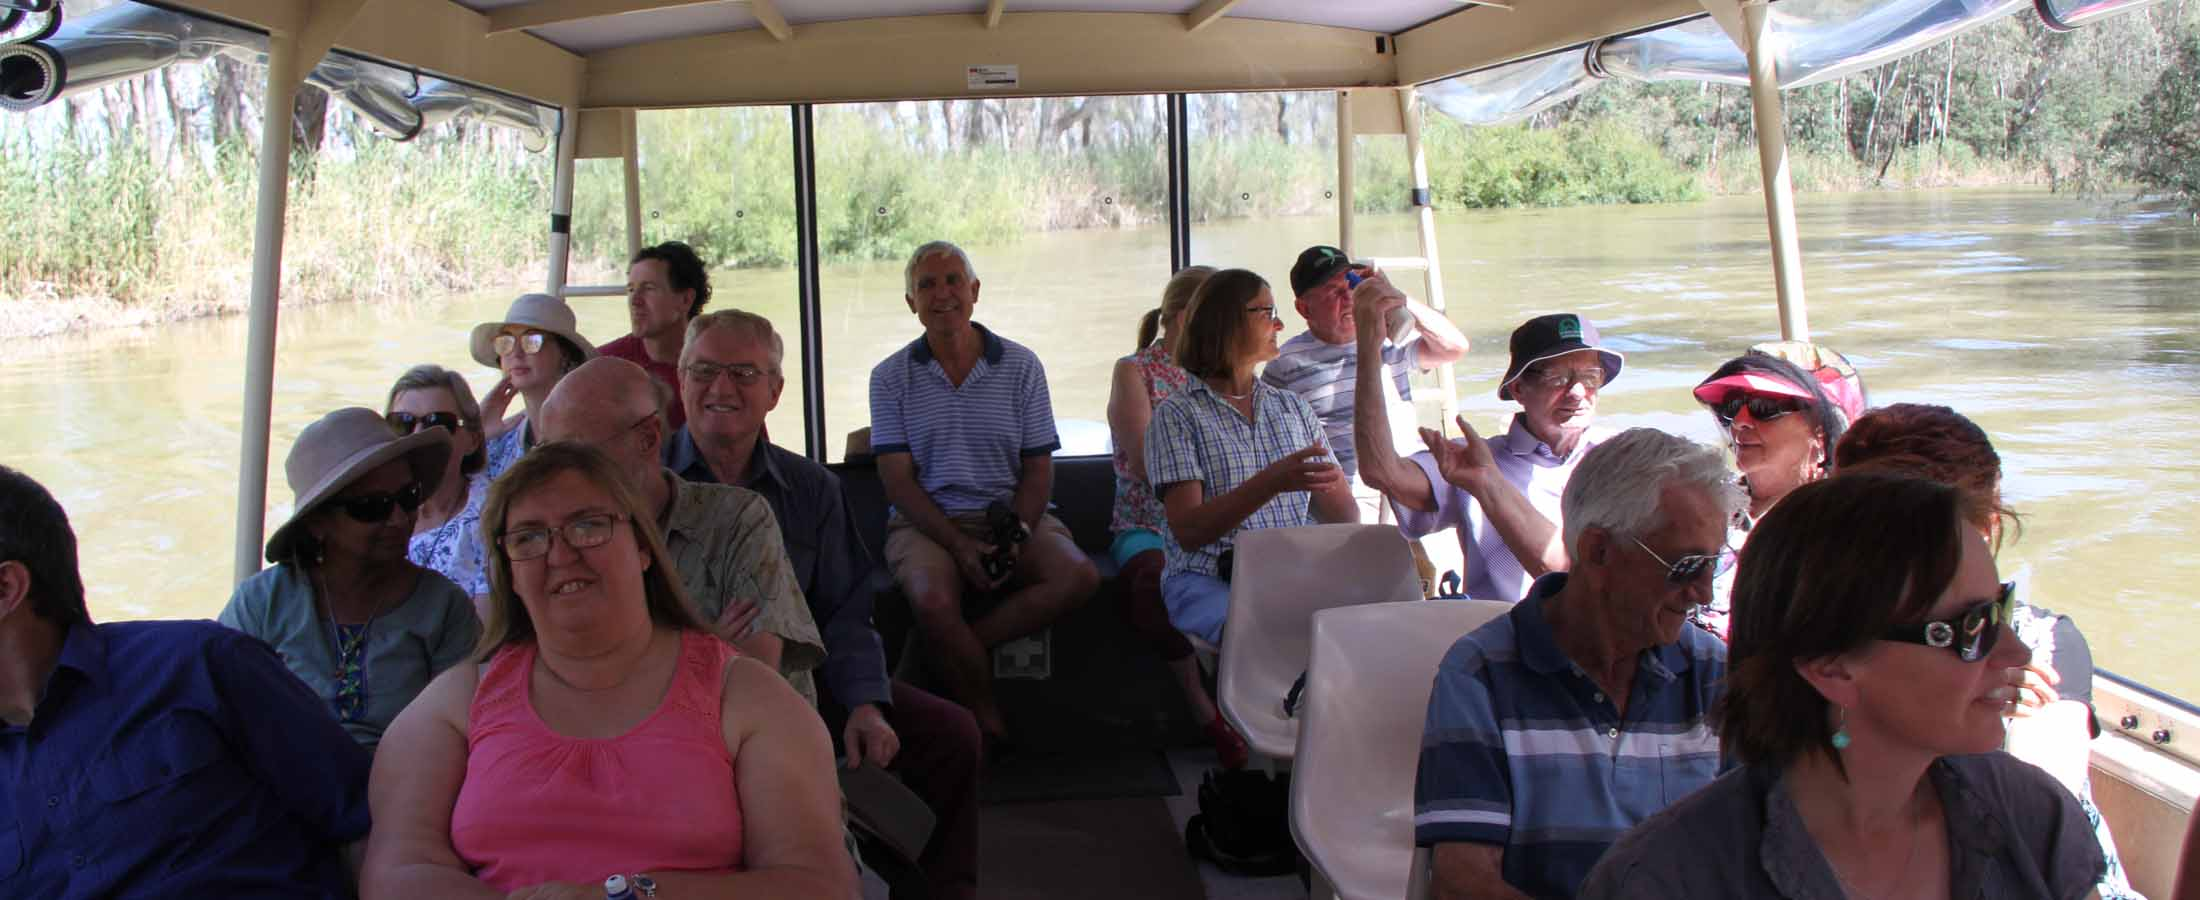 kingfisher river cruise